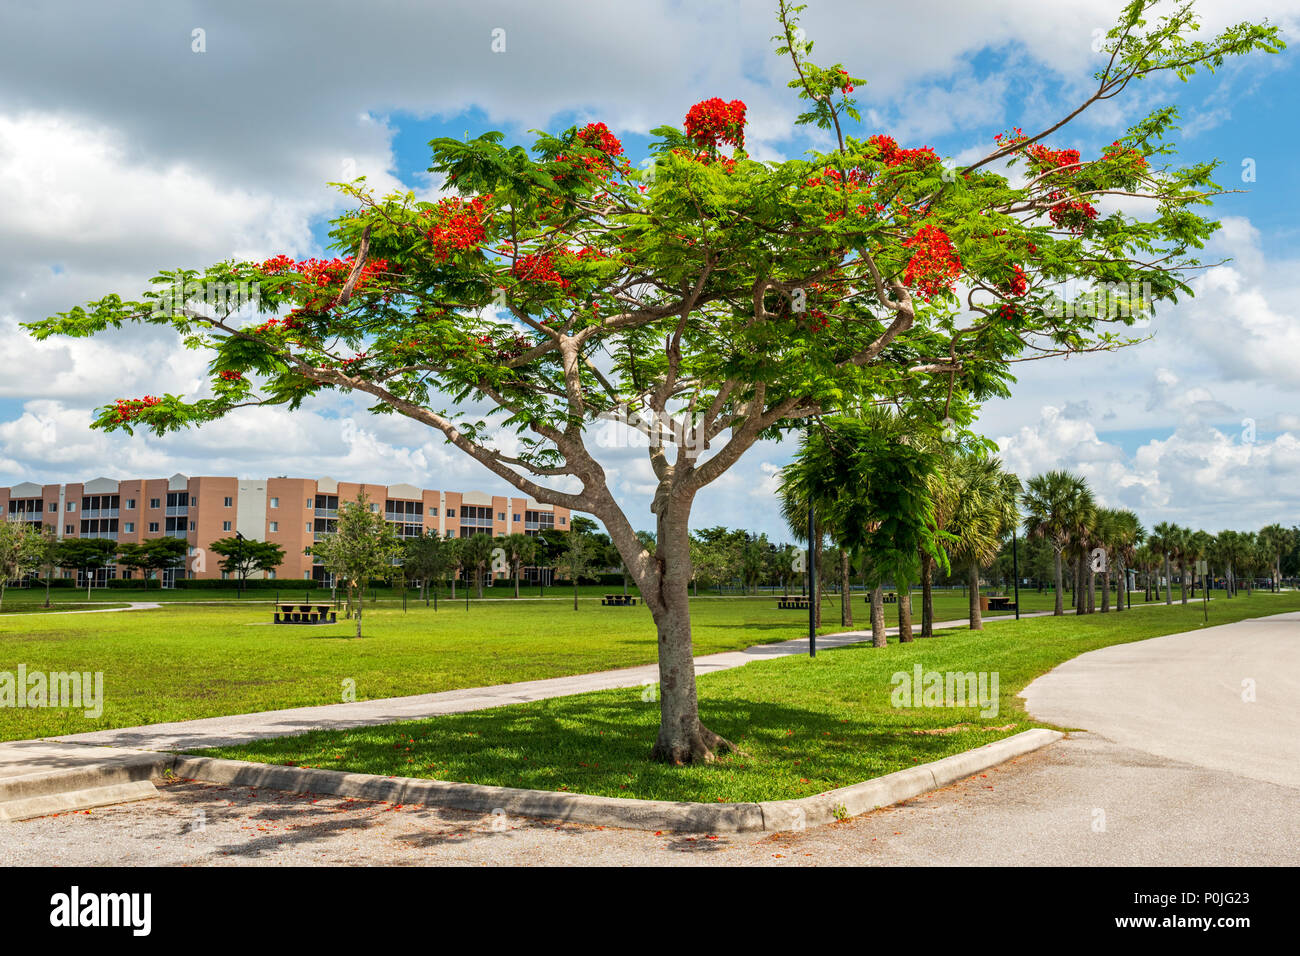 Vibrant red flowers; Royal poinciana; Delonix regia; flame tree; south central Florida; USA - Stock Image